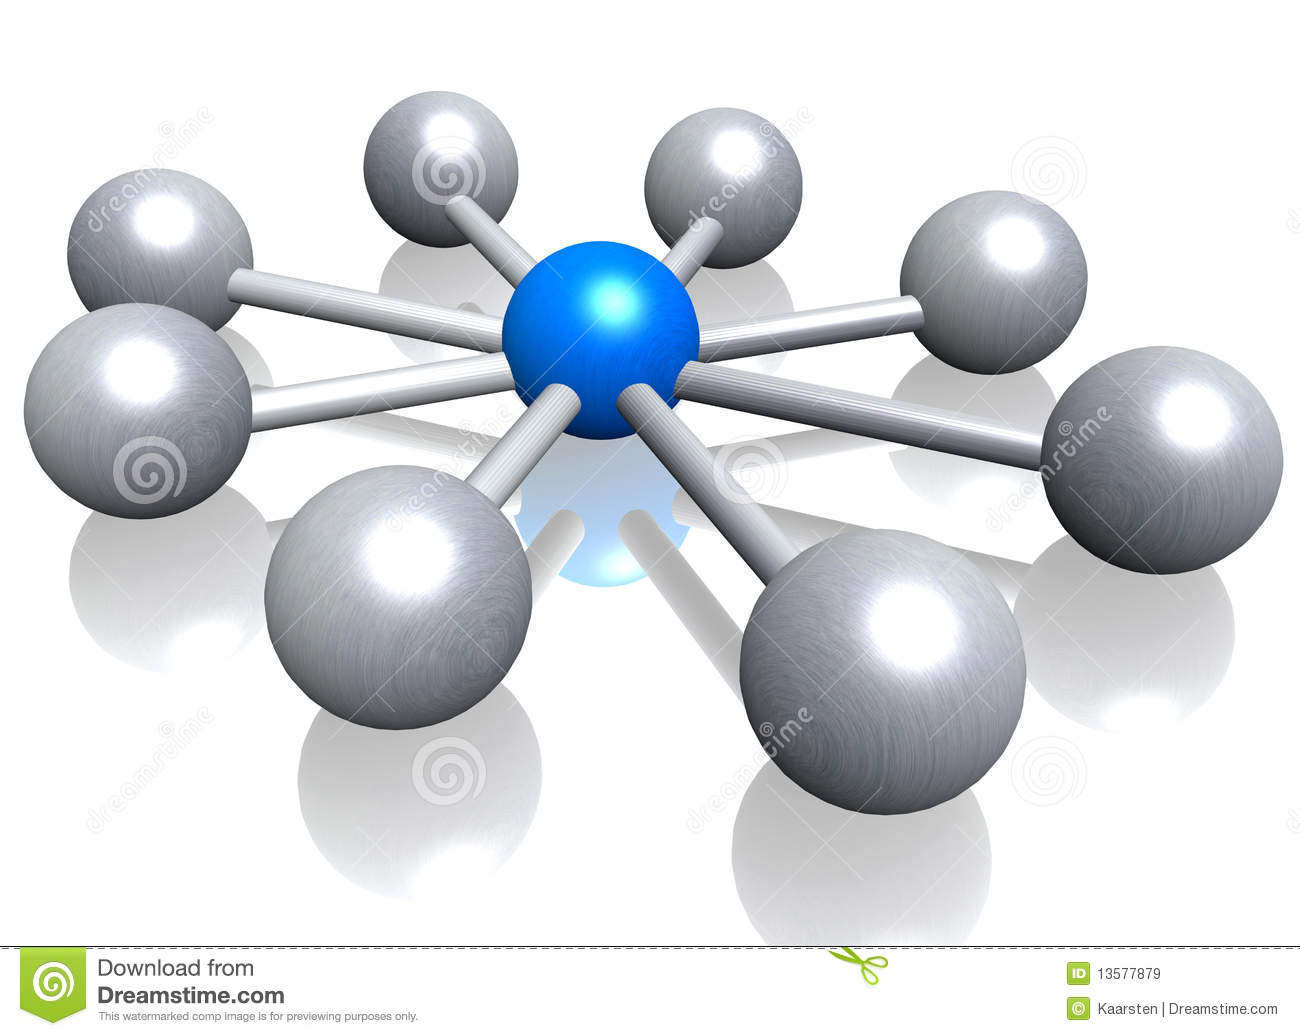 Centralization Royalty Free Stock Images - Image: 13577879